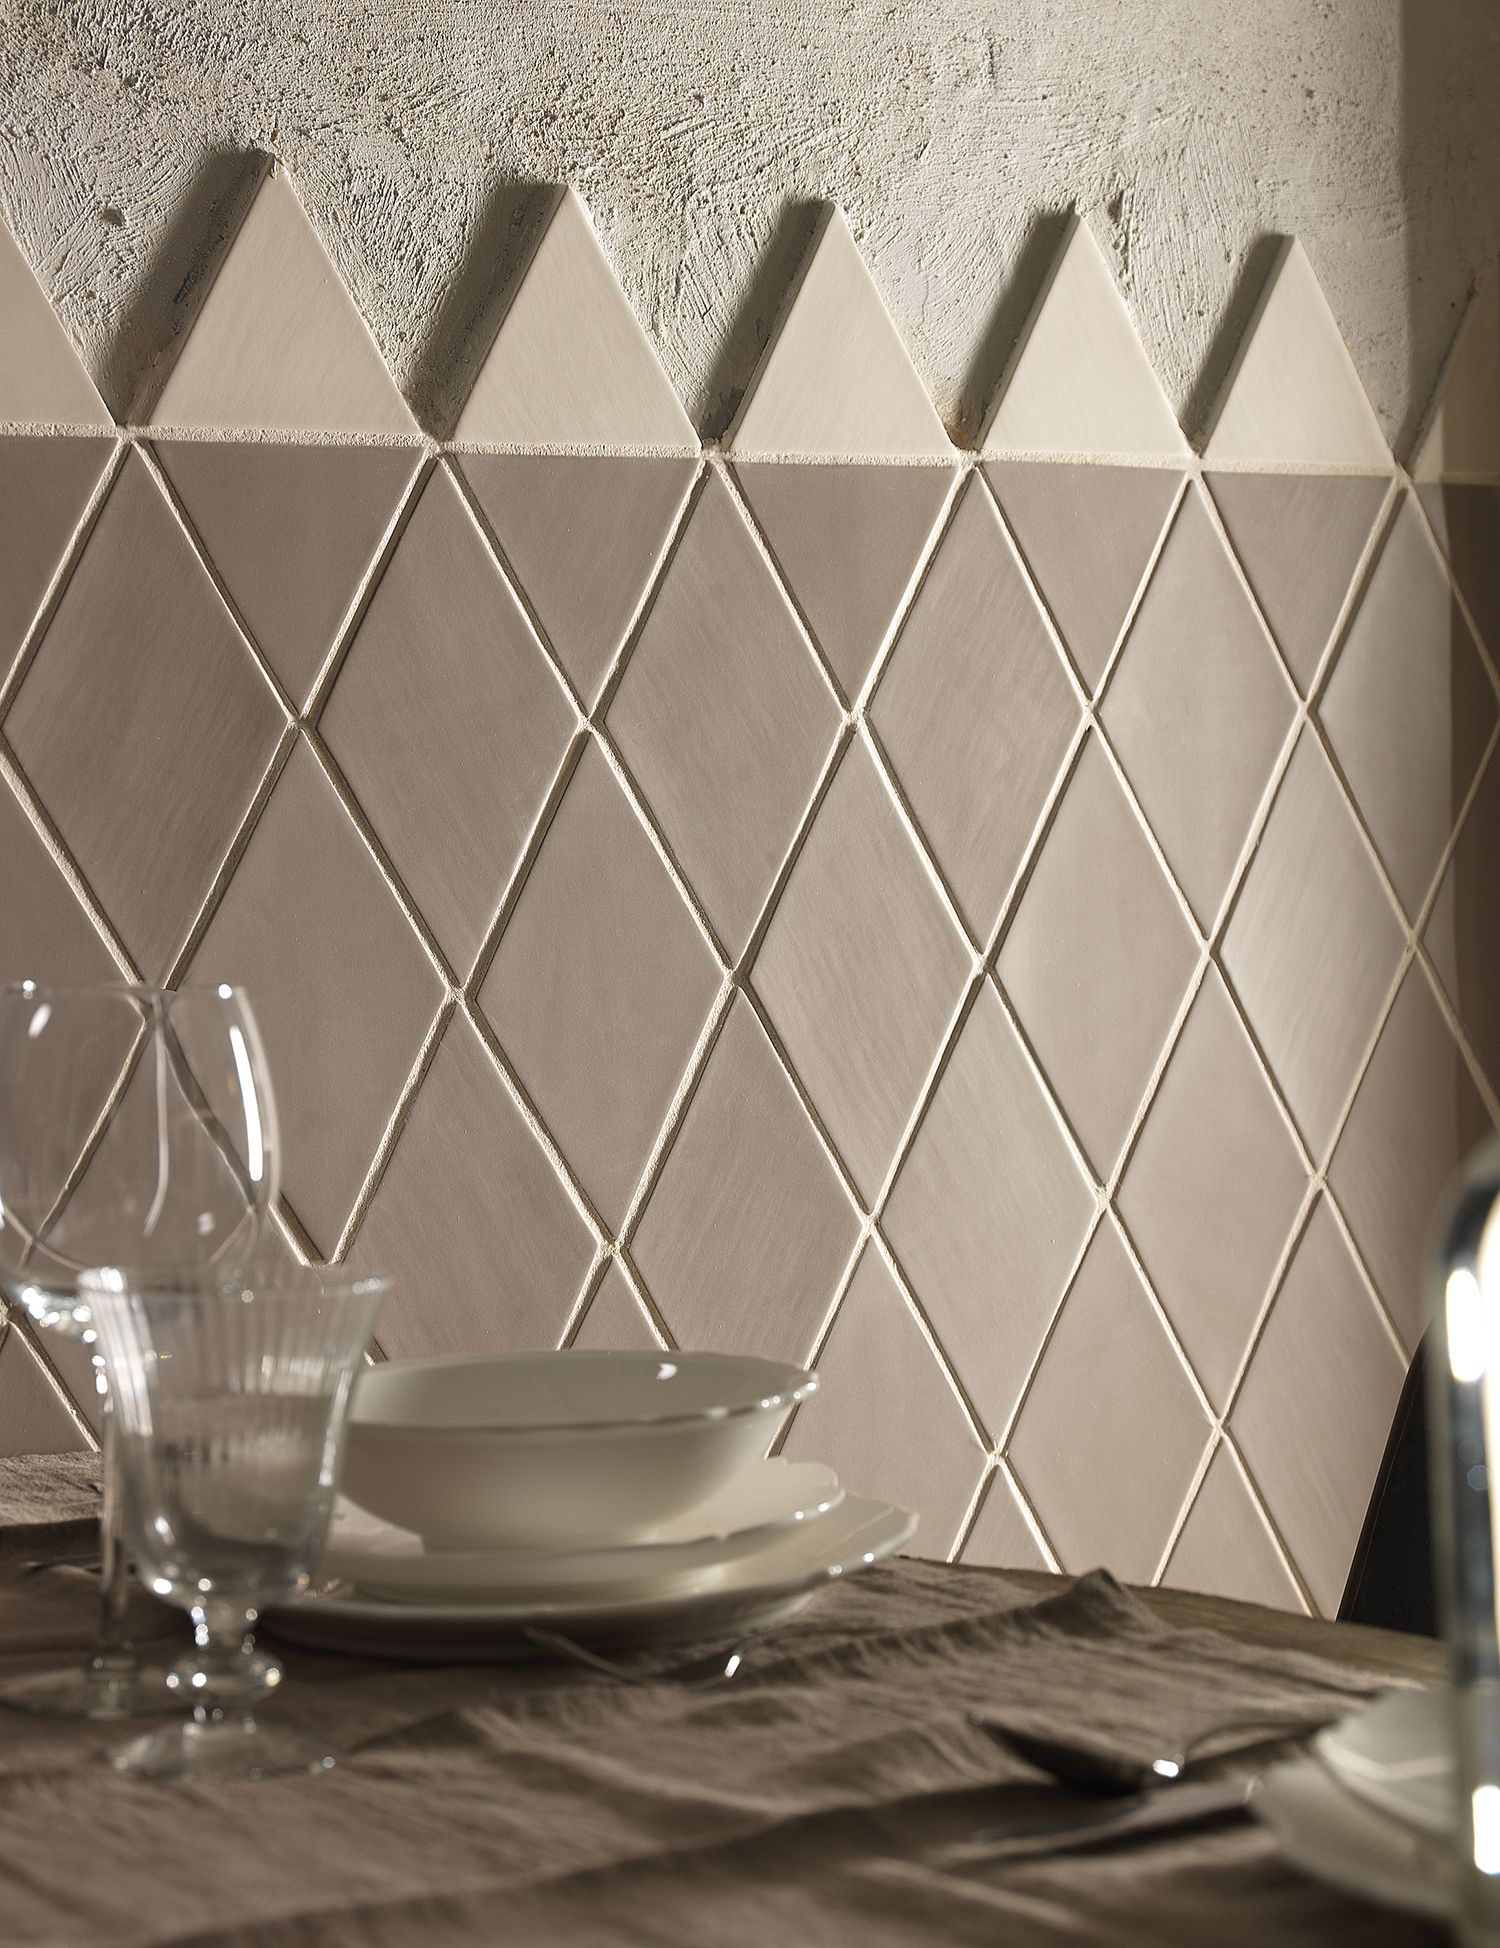 Diamond And Triangle Shaped Wall Tiles From Solus Ceramics Global